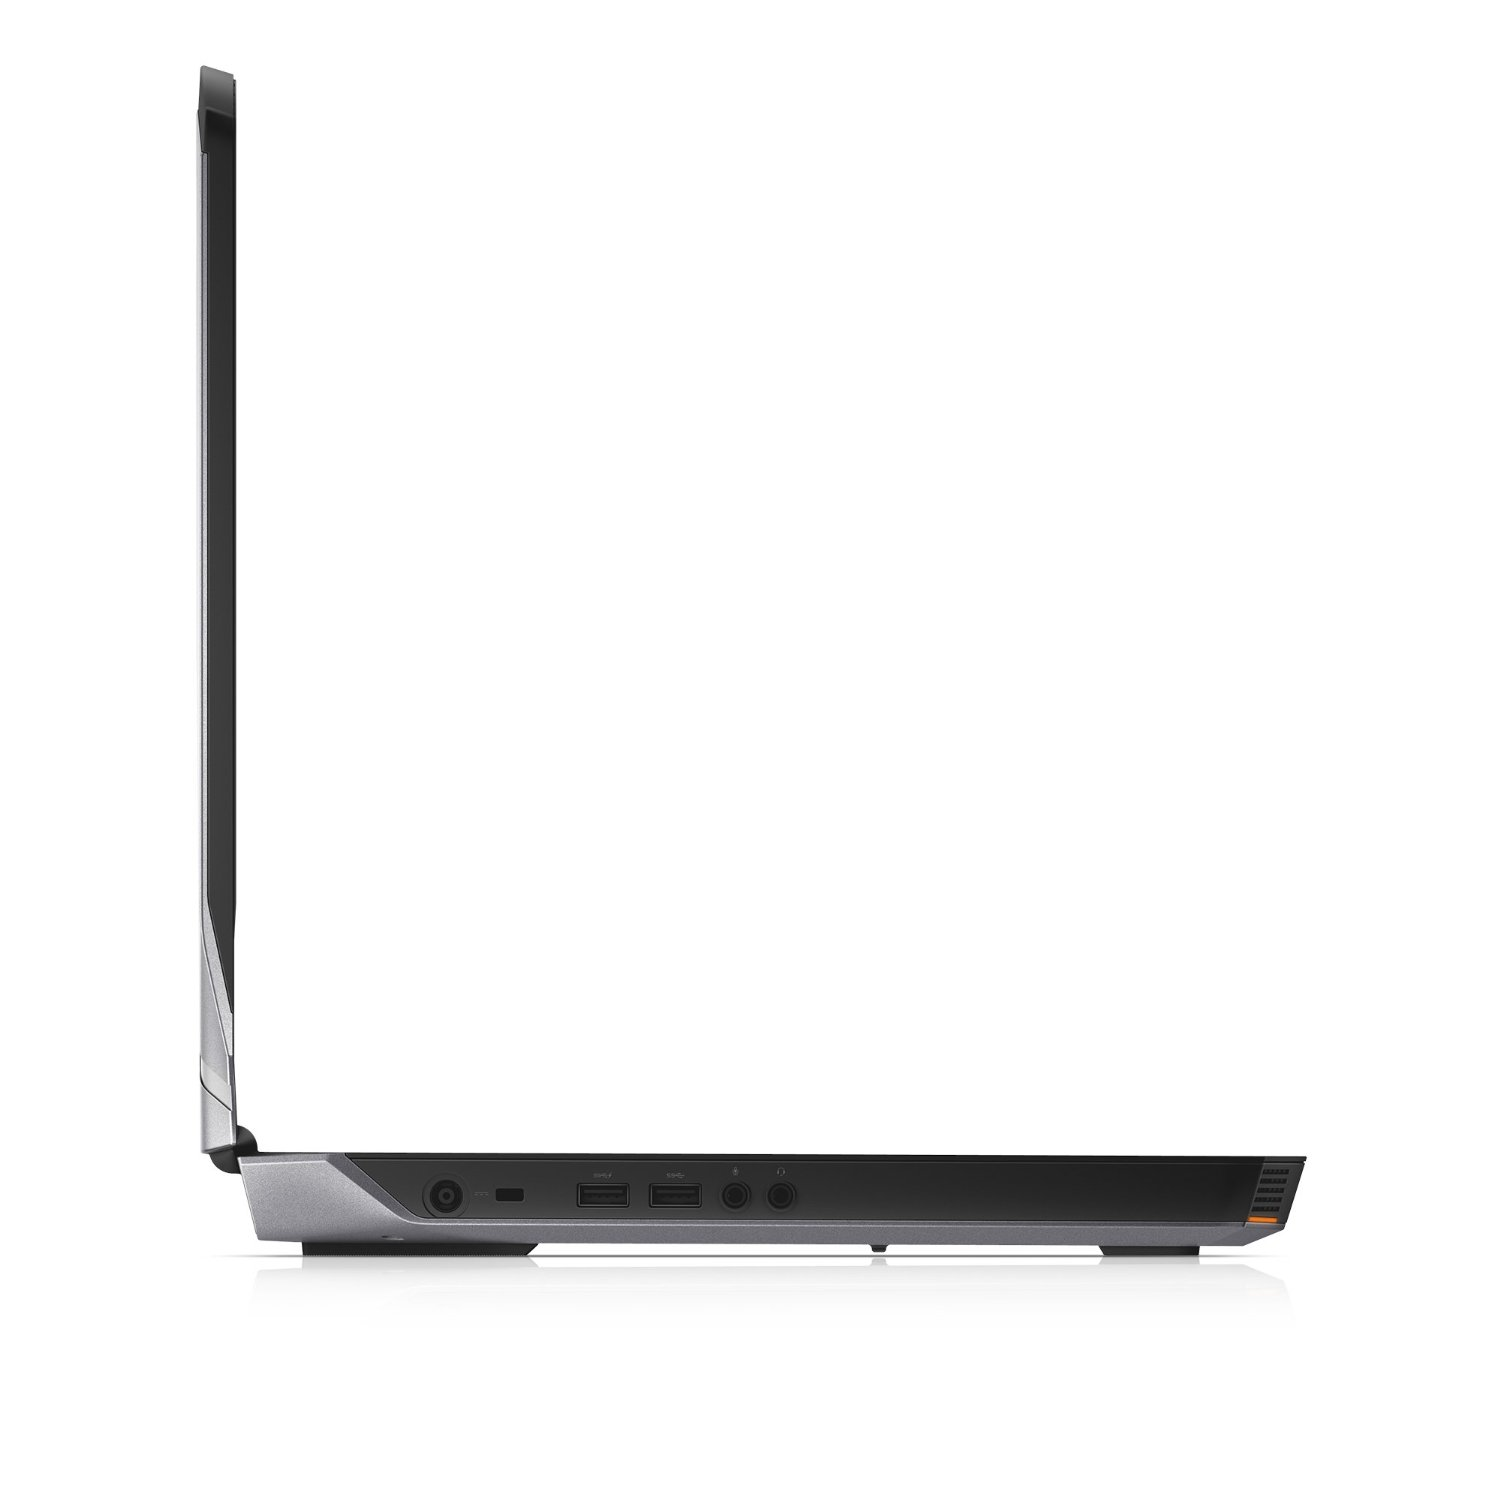 Alienware 17 ANW17-2136SLV Review - BEST GAMING FOR YOU!